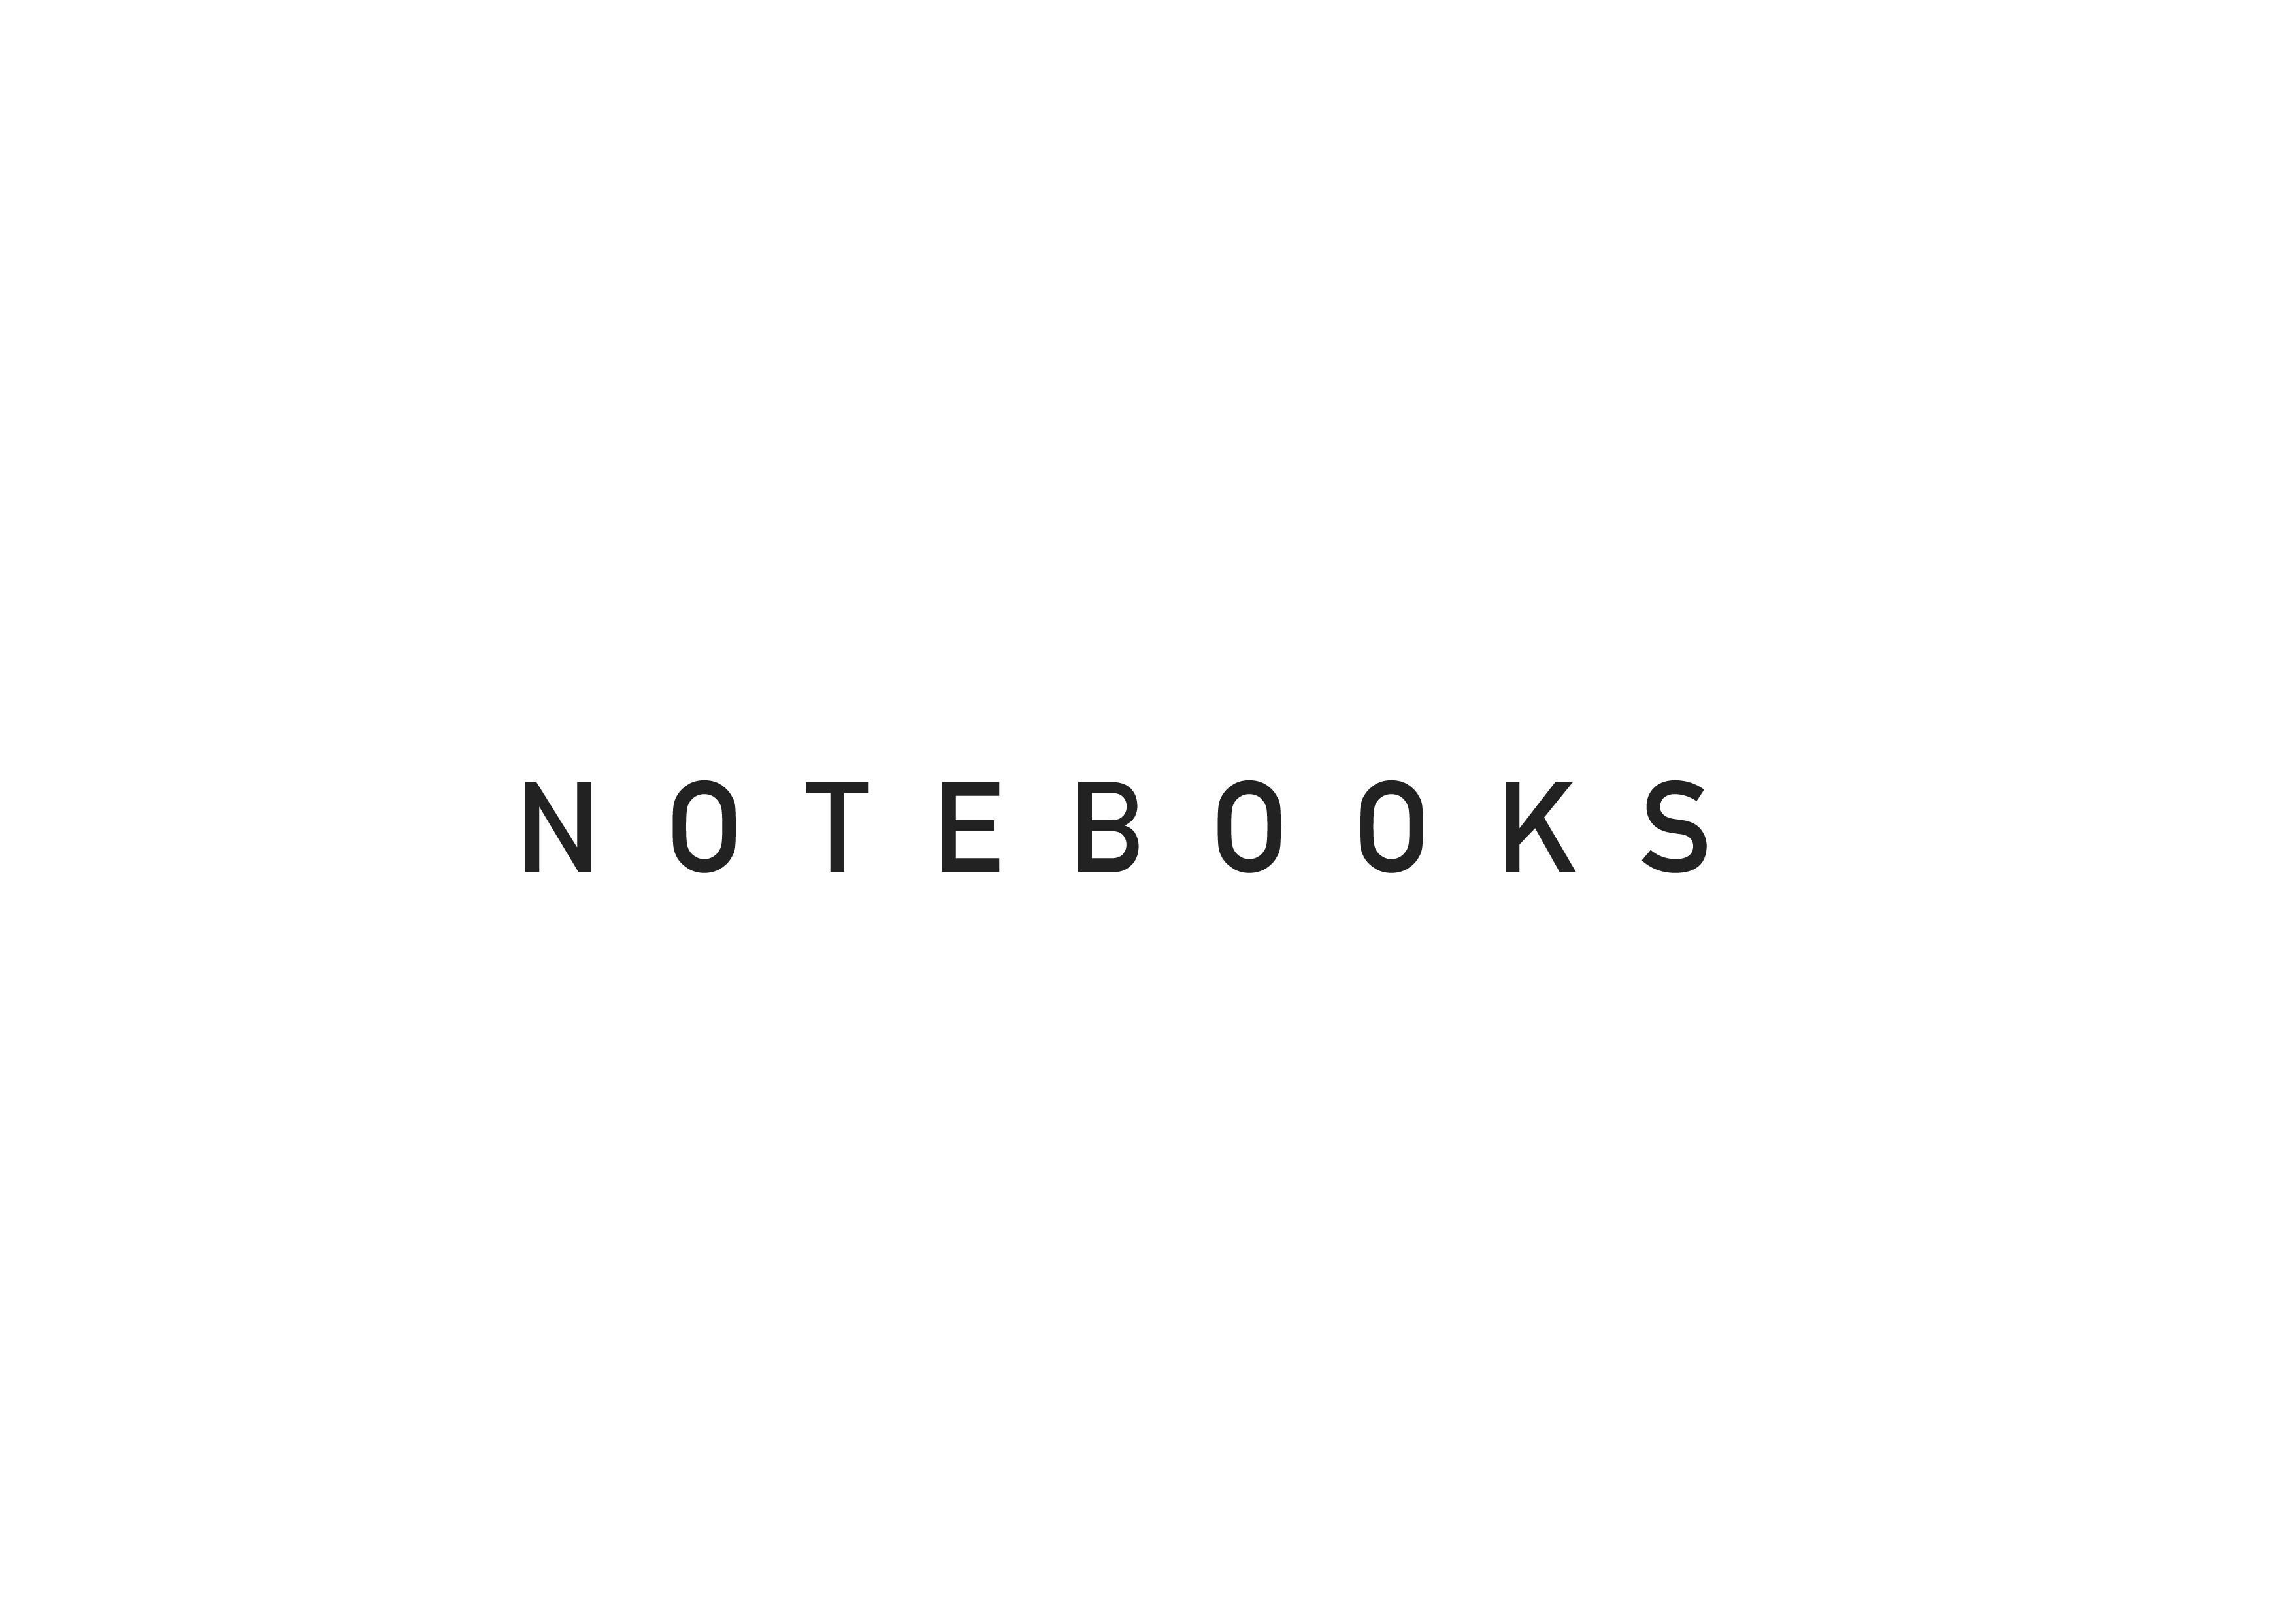 Notebooks-35